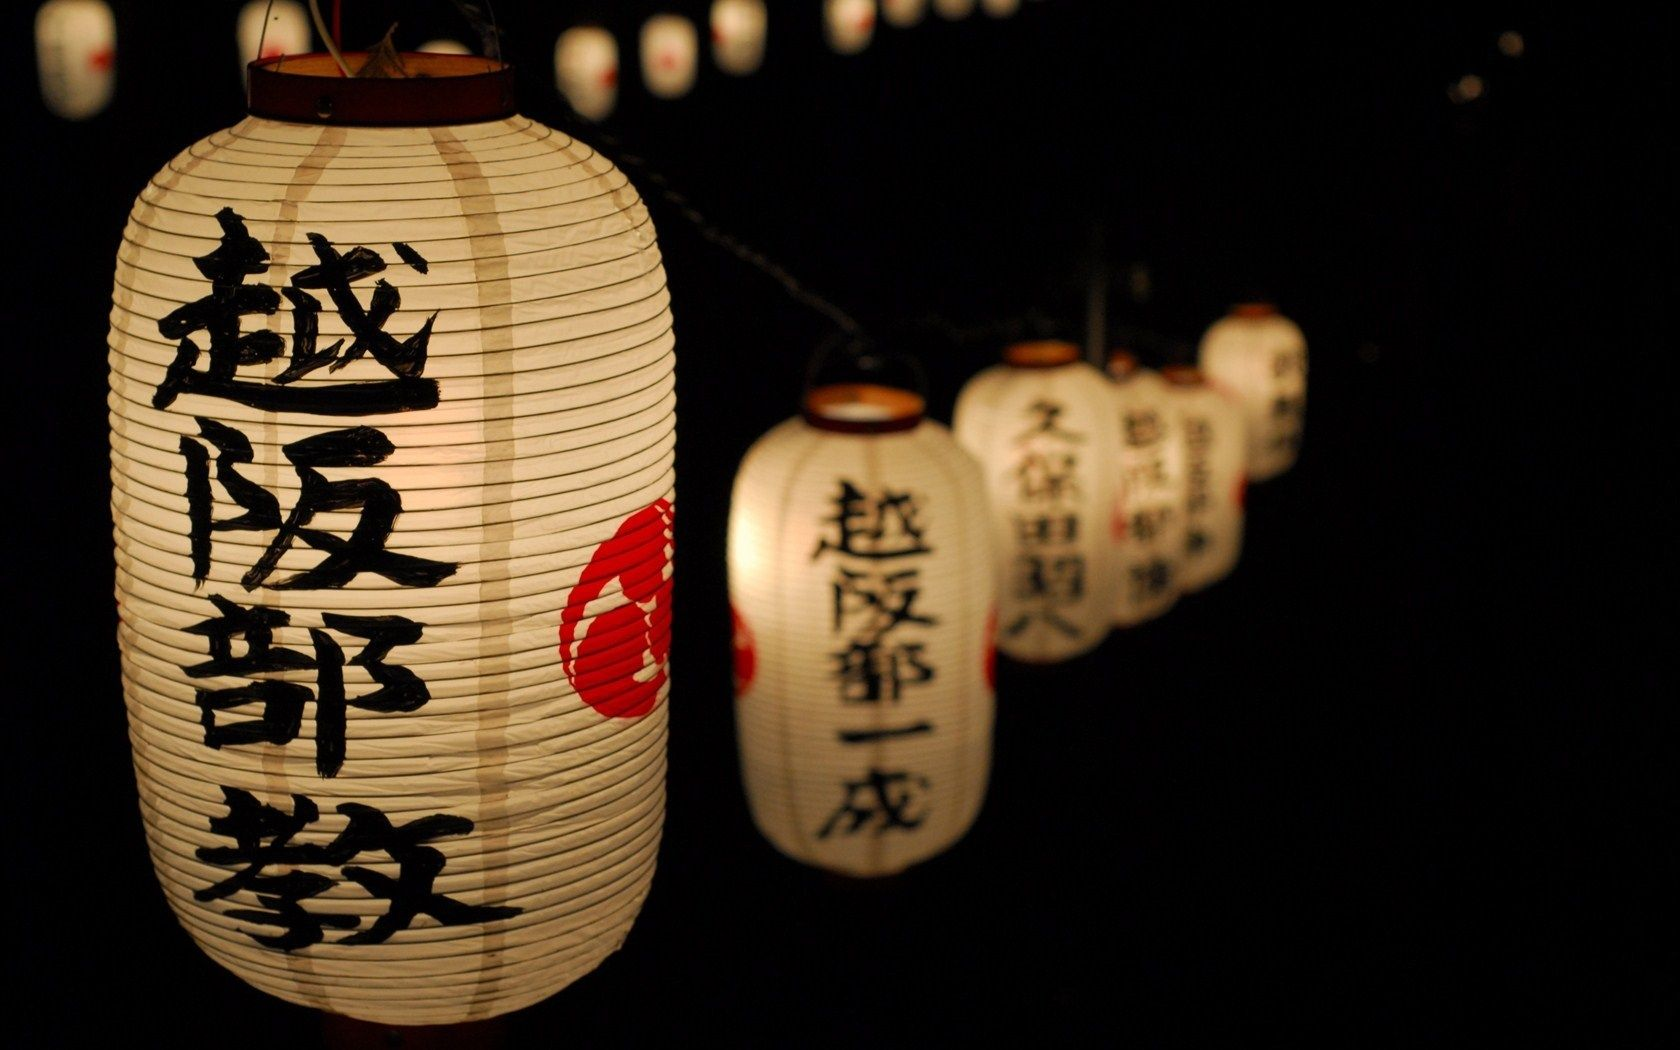 Japanese Lanterns Lights Night Hd Wallpaper Zoomwalls Noodle